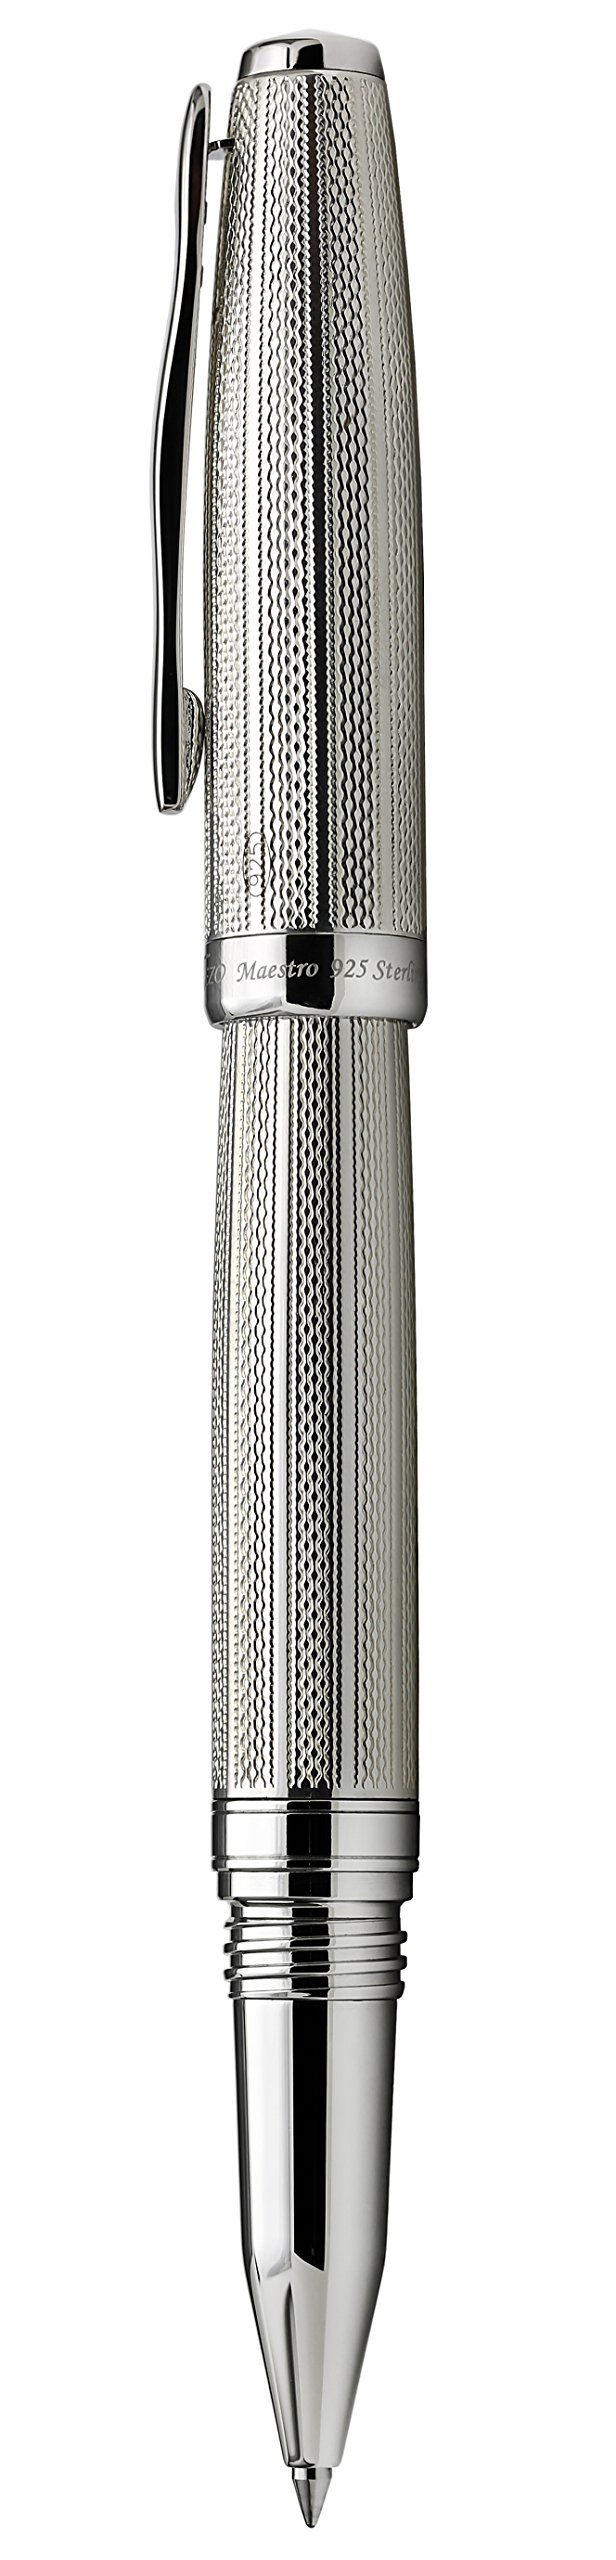 Xezo Solid 925 Sterling Silver Serialized Fine Rollerball Pen with Screw-On Cap (Maestro 925 Sterling Silver R-1) by Xezo (Image #4)